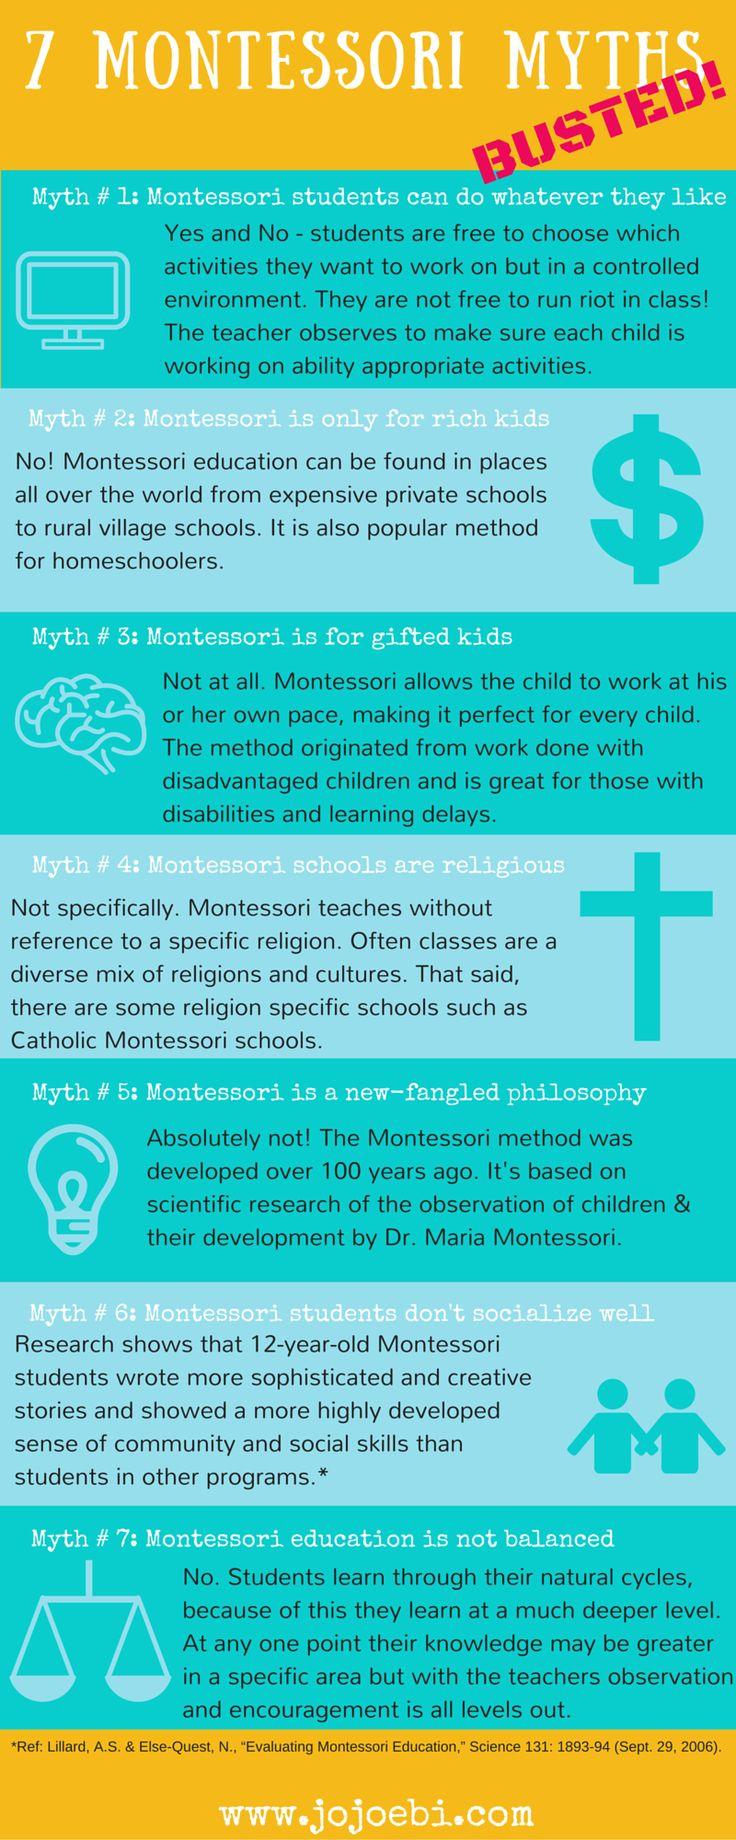 the effectiveness of montessori approach in Lack of innovation in the montessori system, but her discussion is devoted to the danger that innovation might reduce the effectiveness of the method (pp.